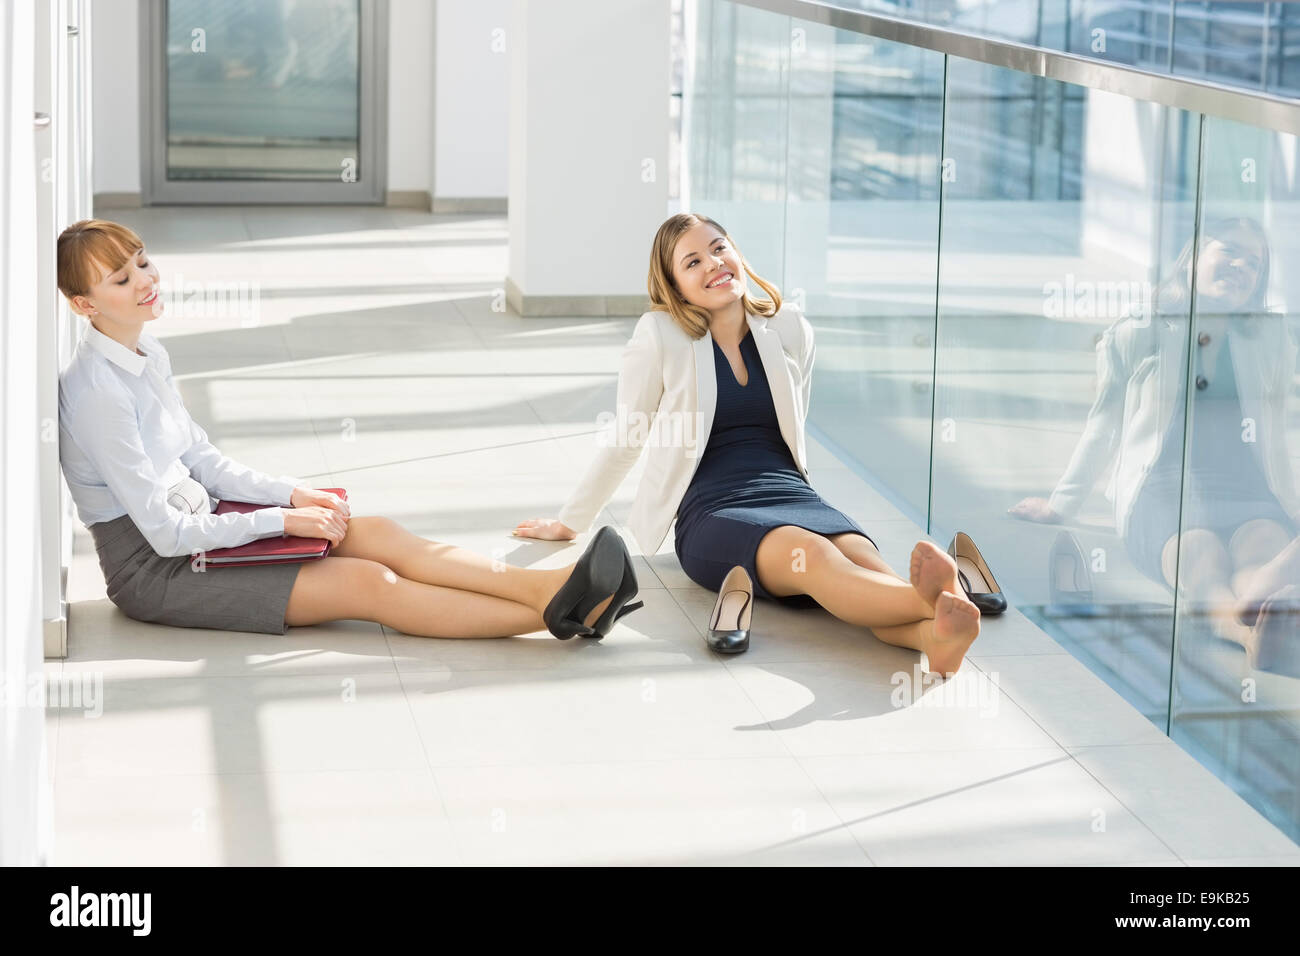 Tired businesswoman relaxing at office hallway - Stock Image